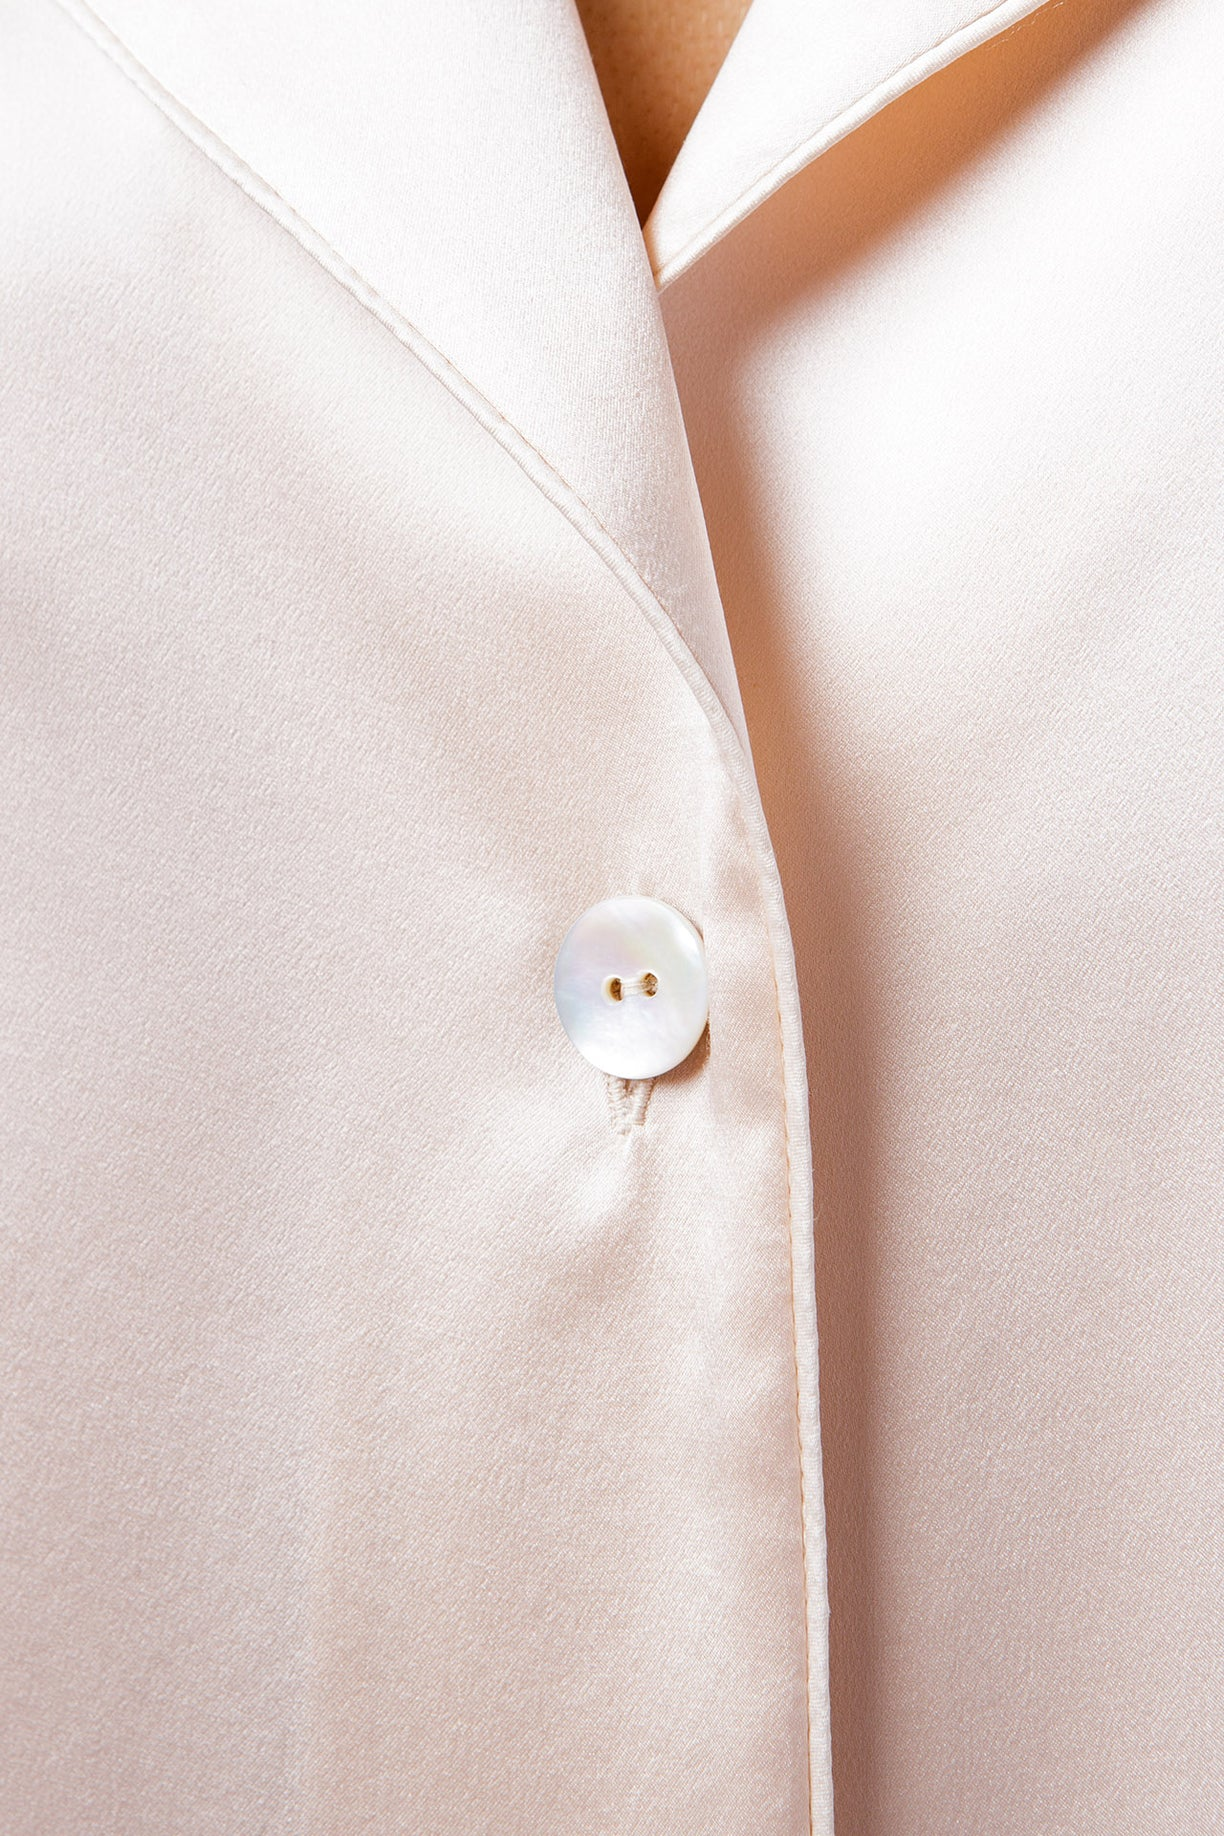 Ann shirt in blush, button closeup